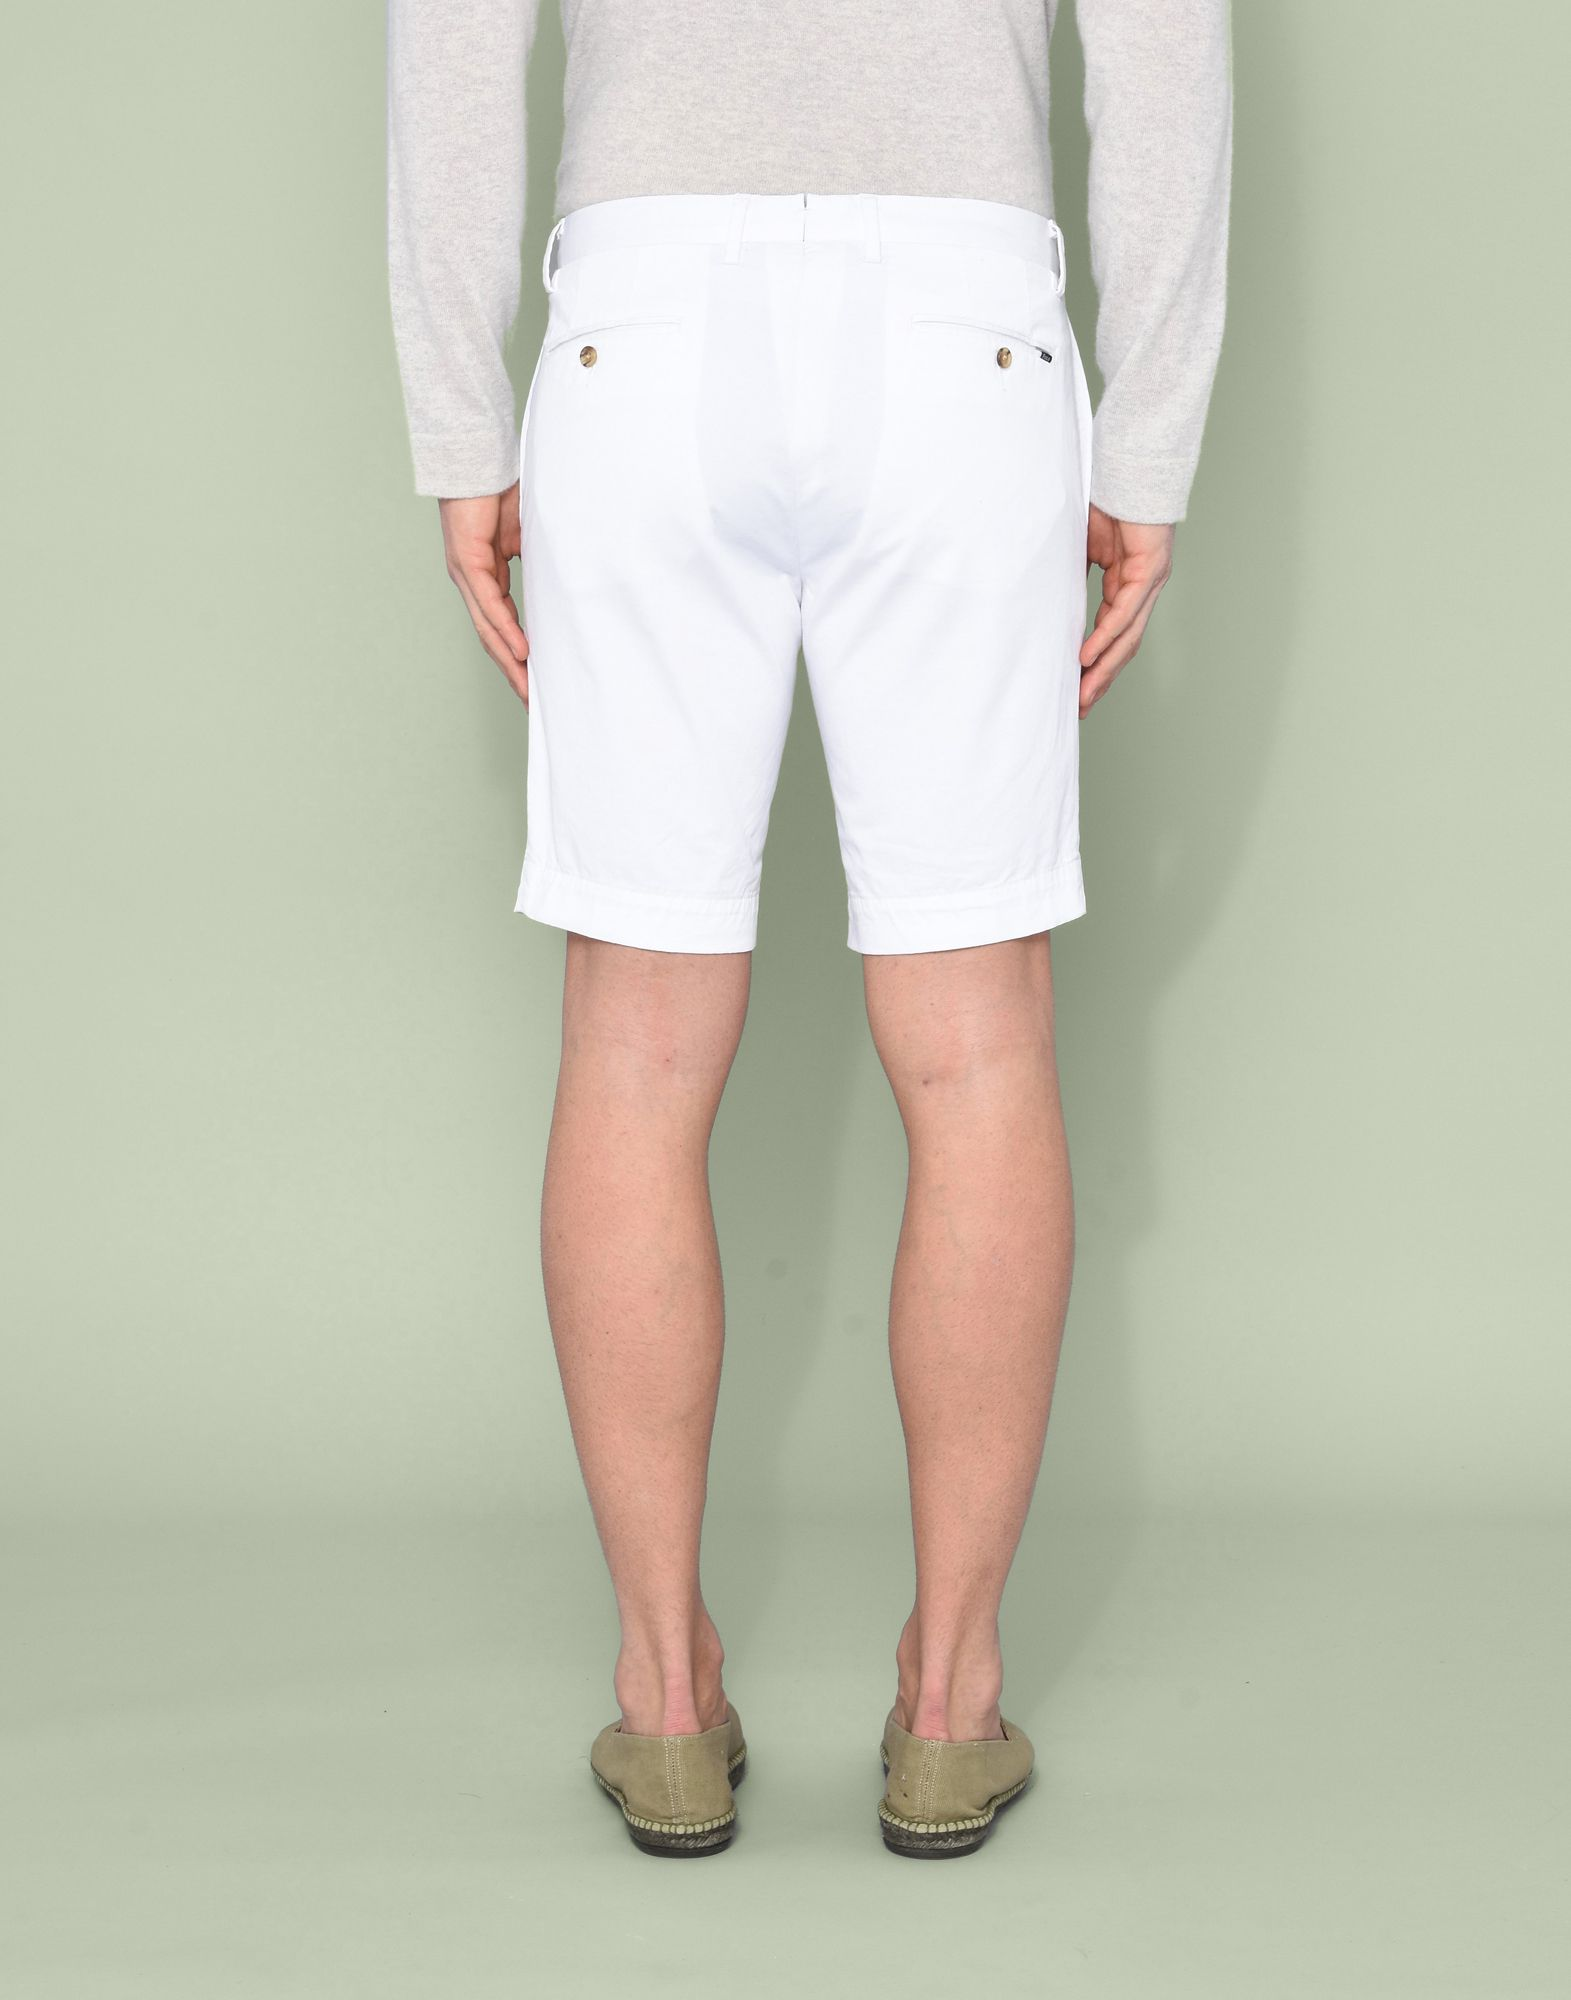 Shorts Shorts Shorts & Bermuda Polo Ralph Lauren Stretch Military Short - Uomo - 13172831WD 4d7985